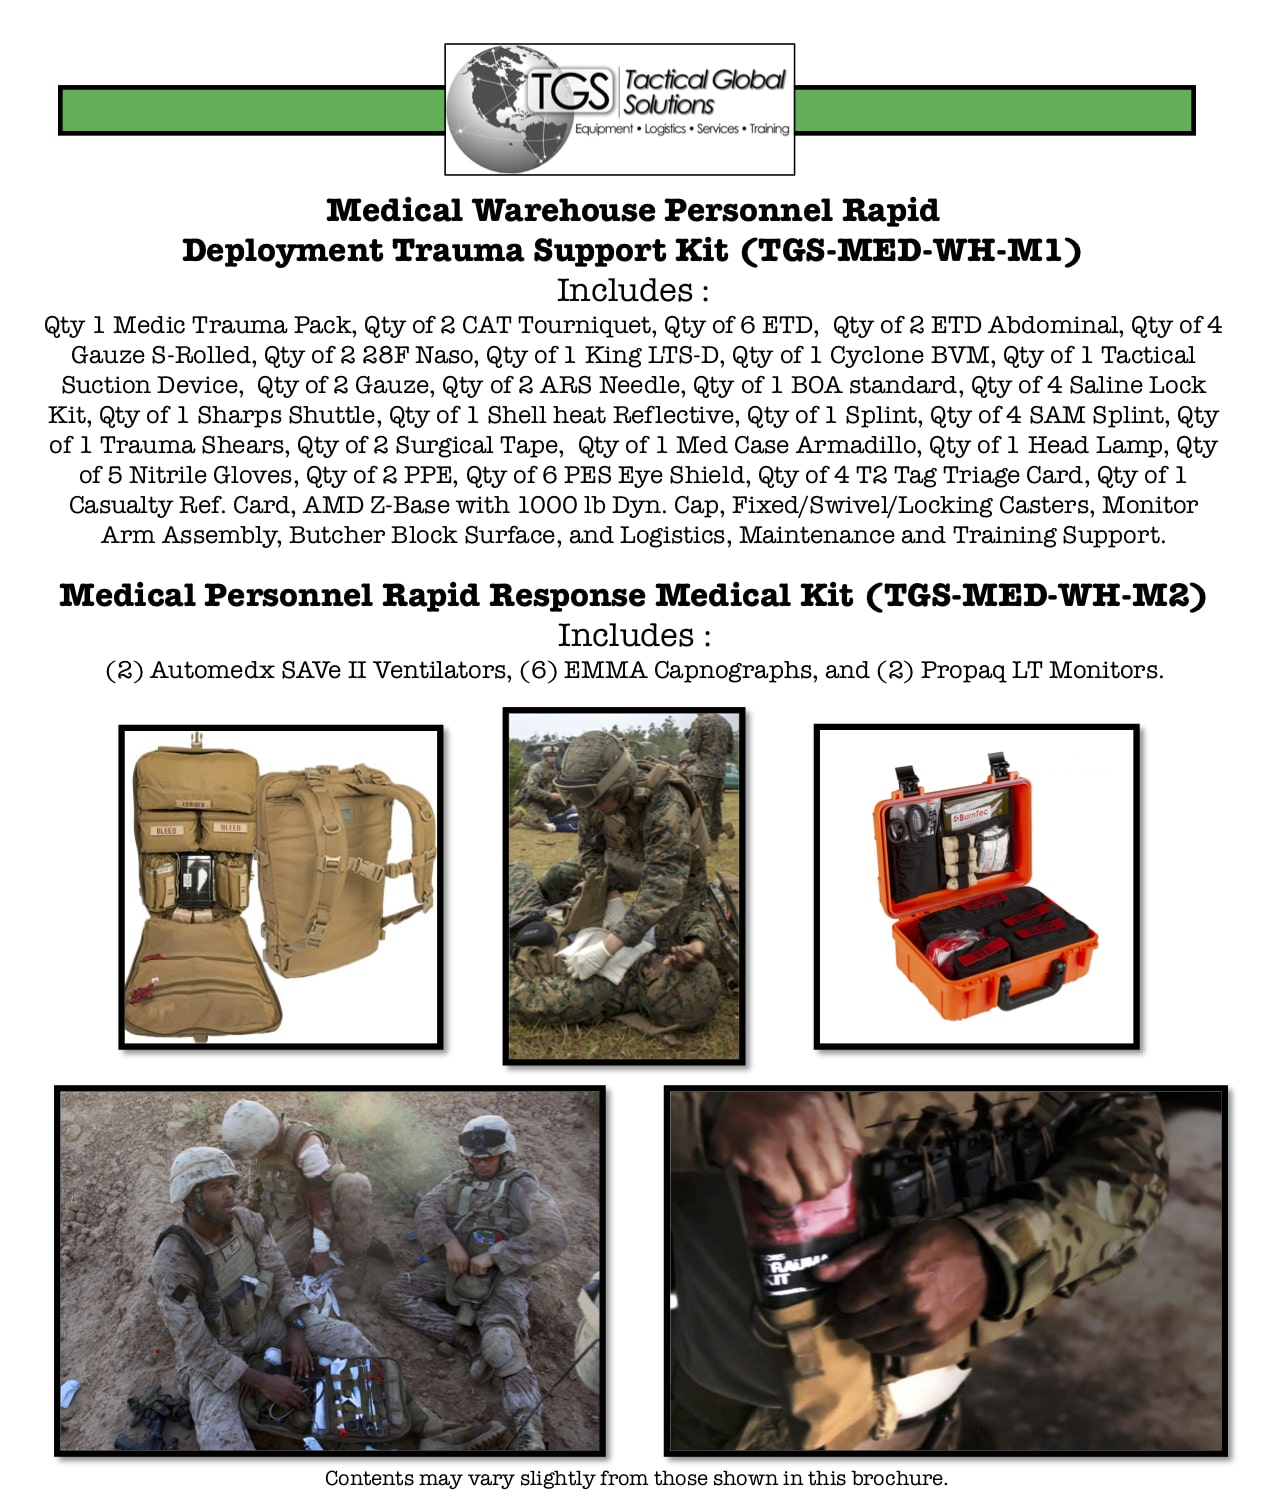 Medical Warehouse Personnel Rapid Deployment Trauma Support Kit